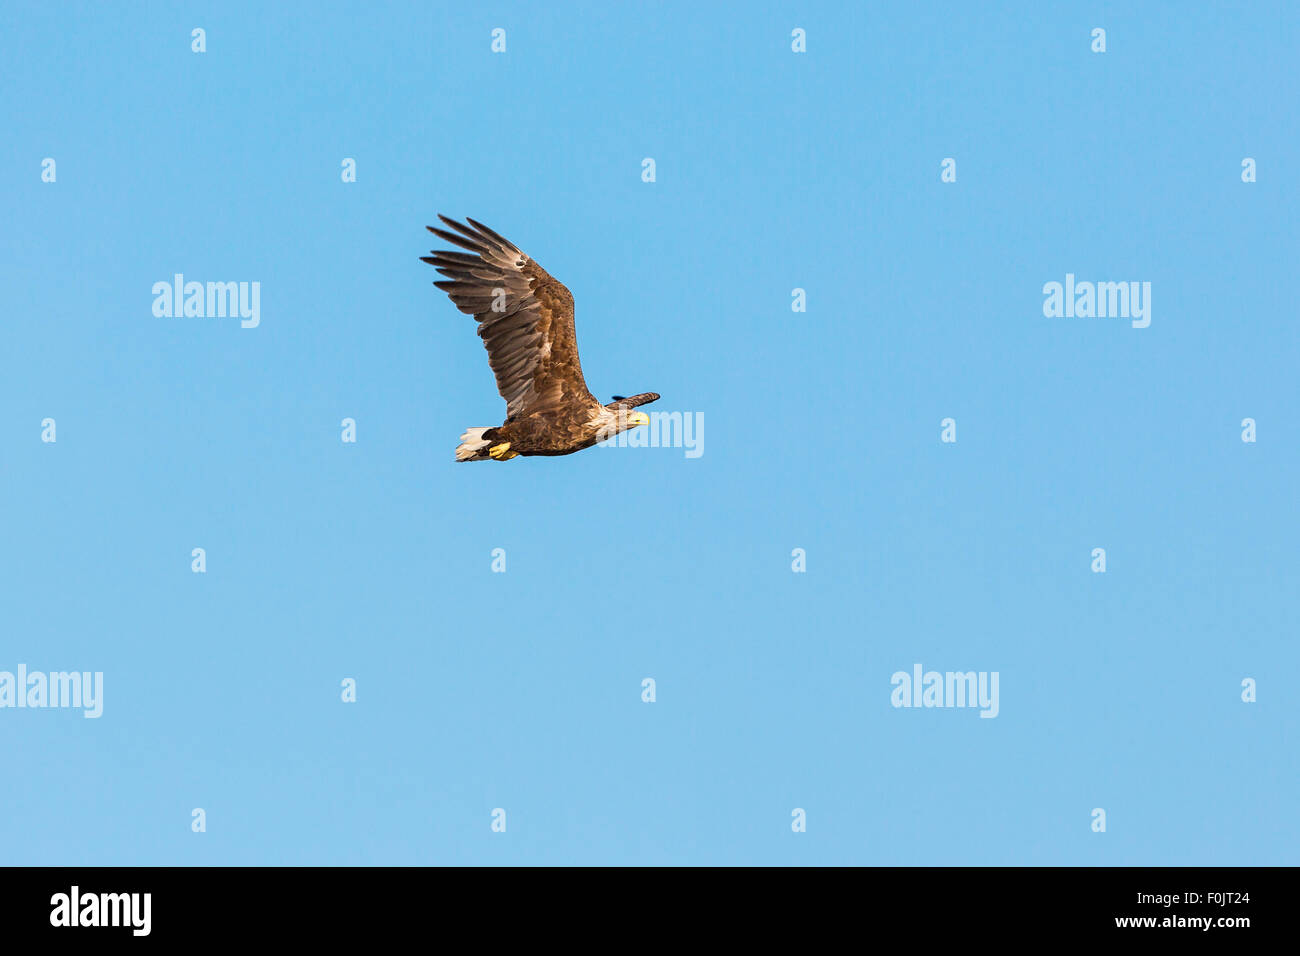 White Tailed eagle flying in the sky Stock Photo